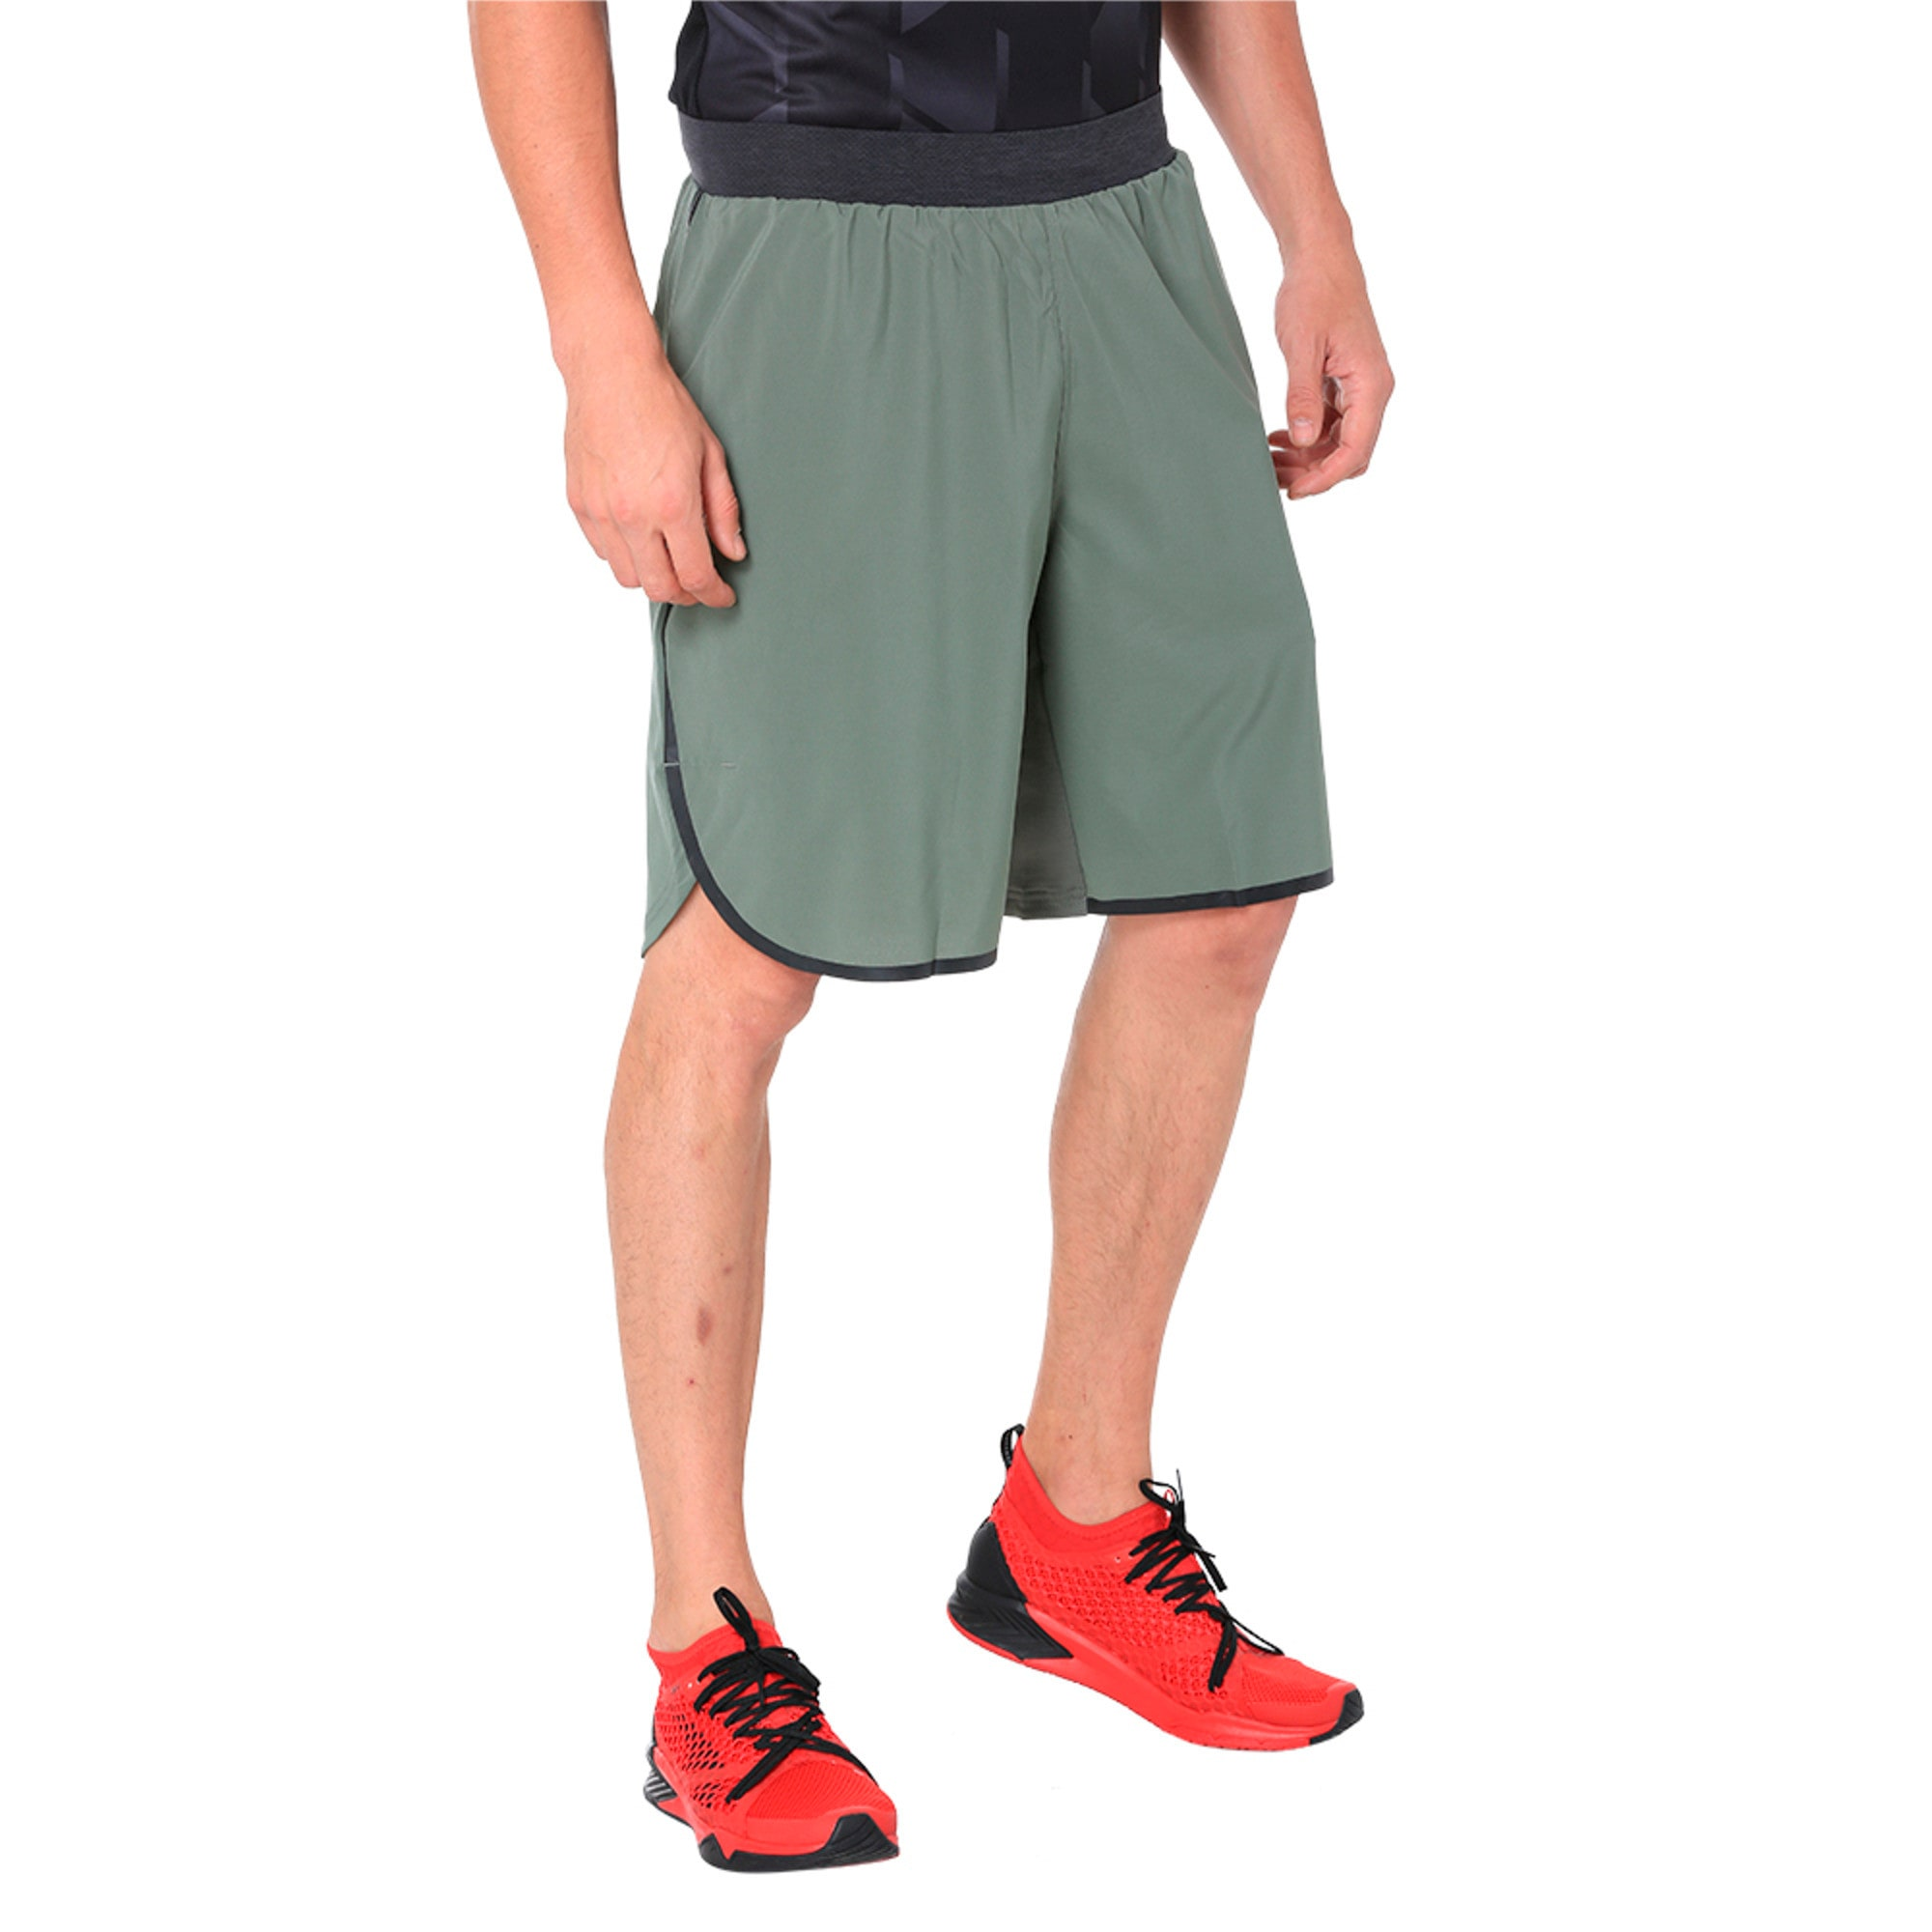 Thumbnail 3 of Energy Laser Shorts, Castor Gray-Dark GrayHeather, medium-IND